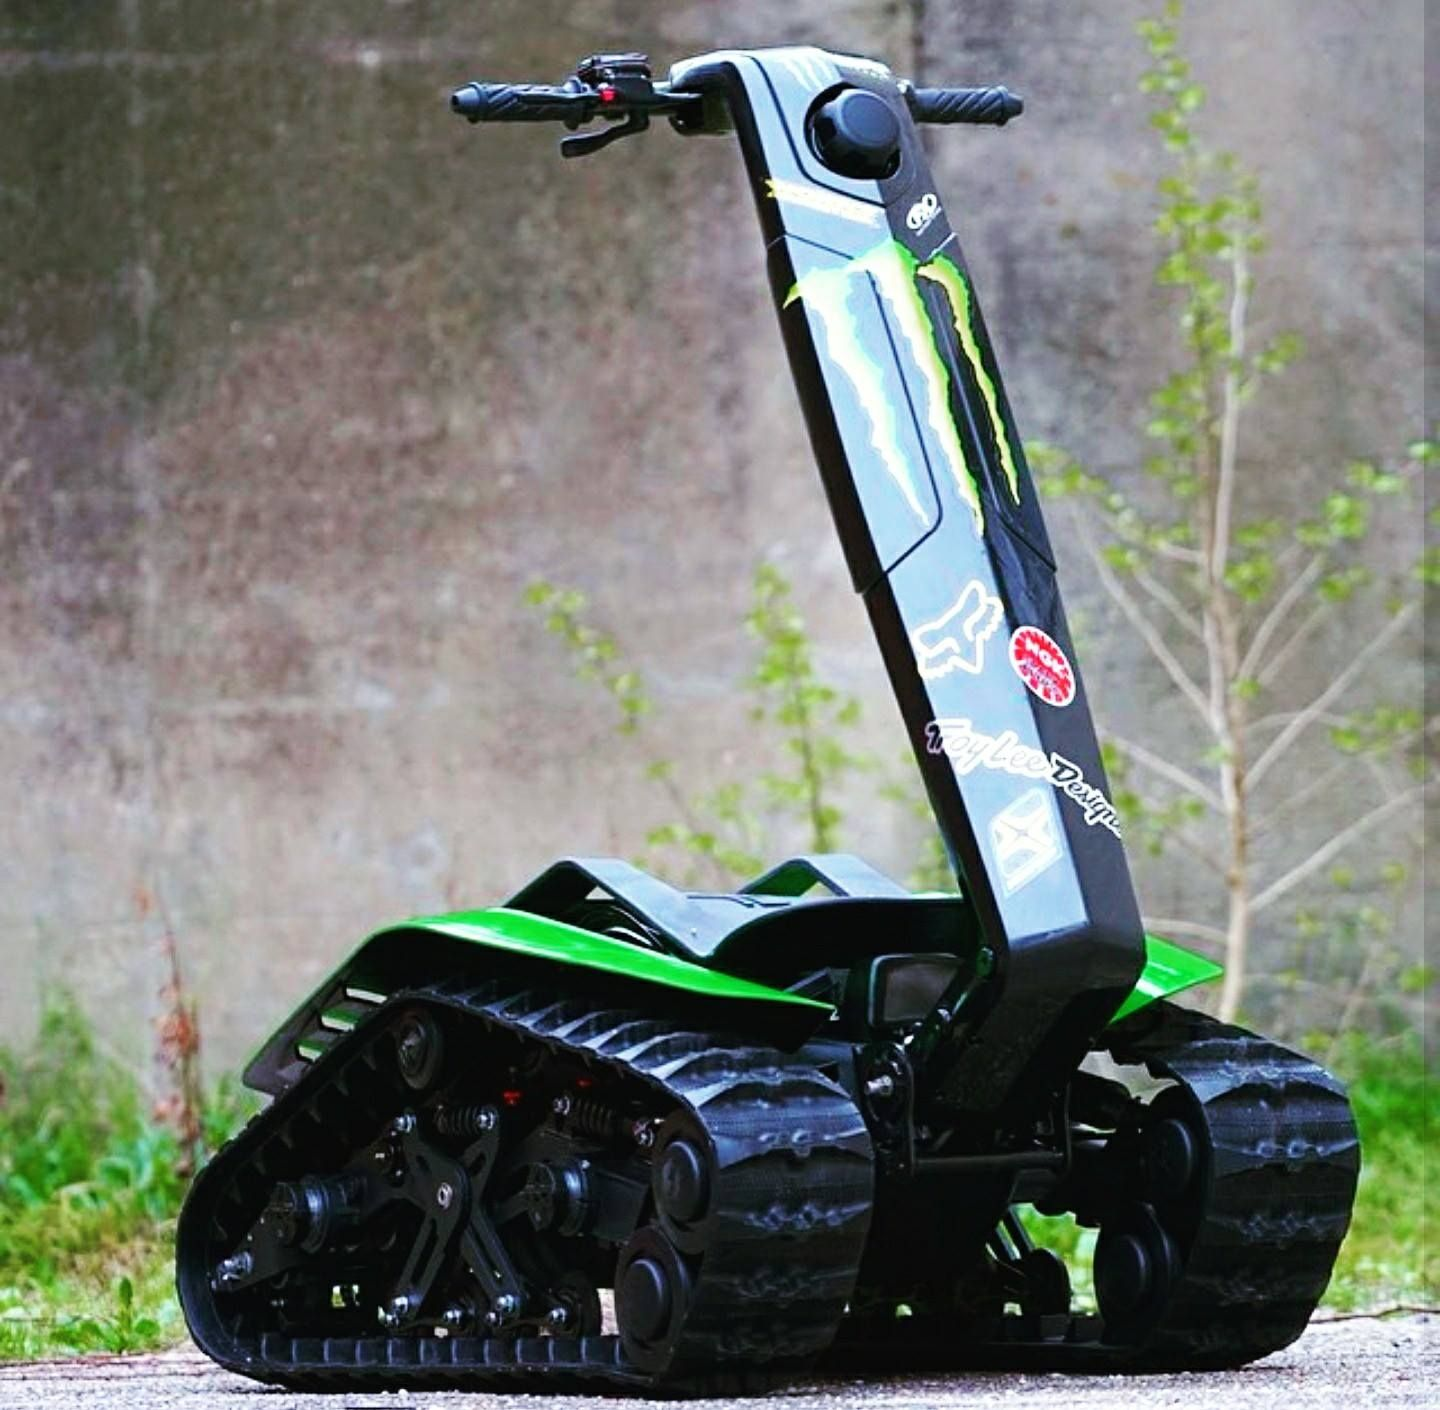 Dtv Shredder For Sale >> Article Headline Atv Trailers Motorbike Clothing Atv